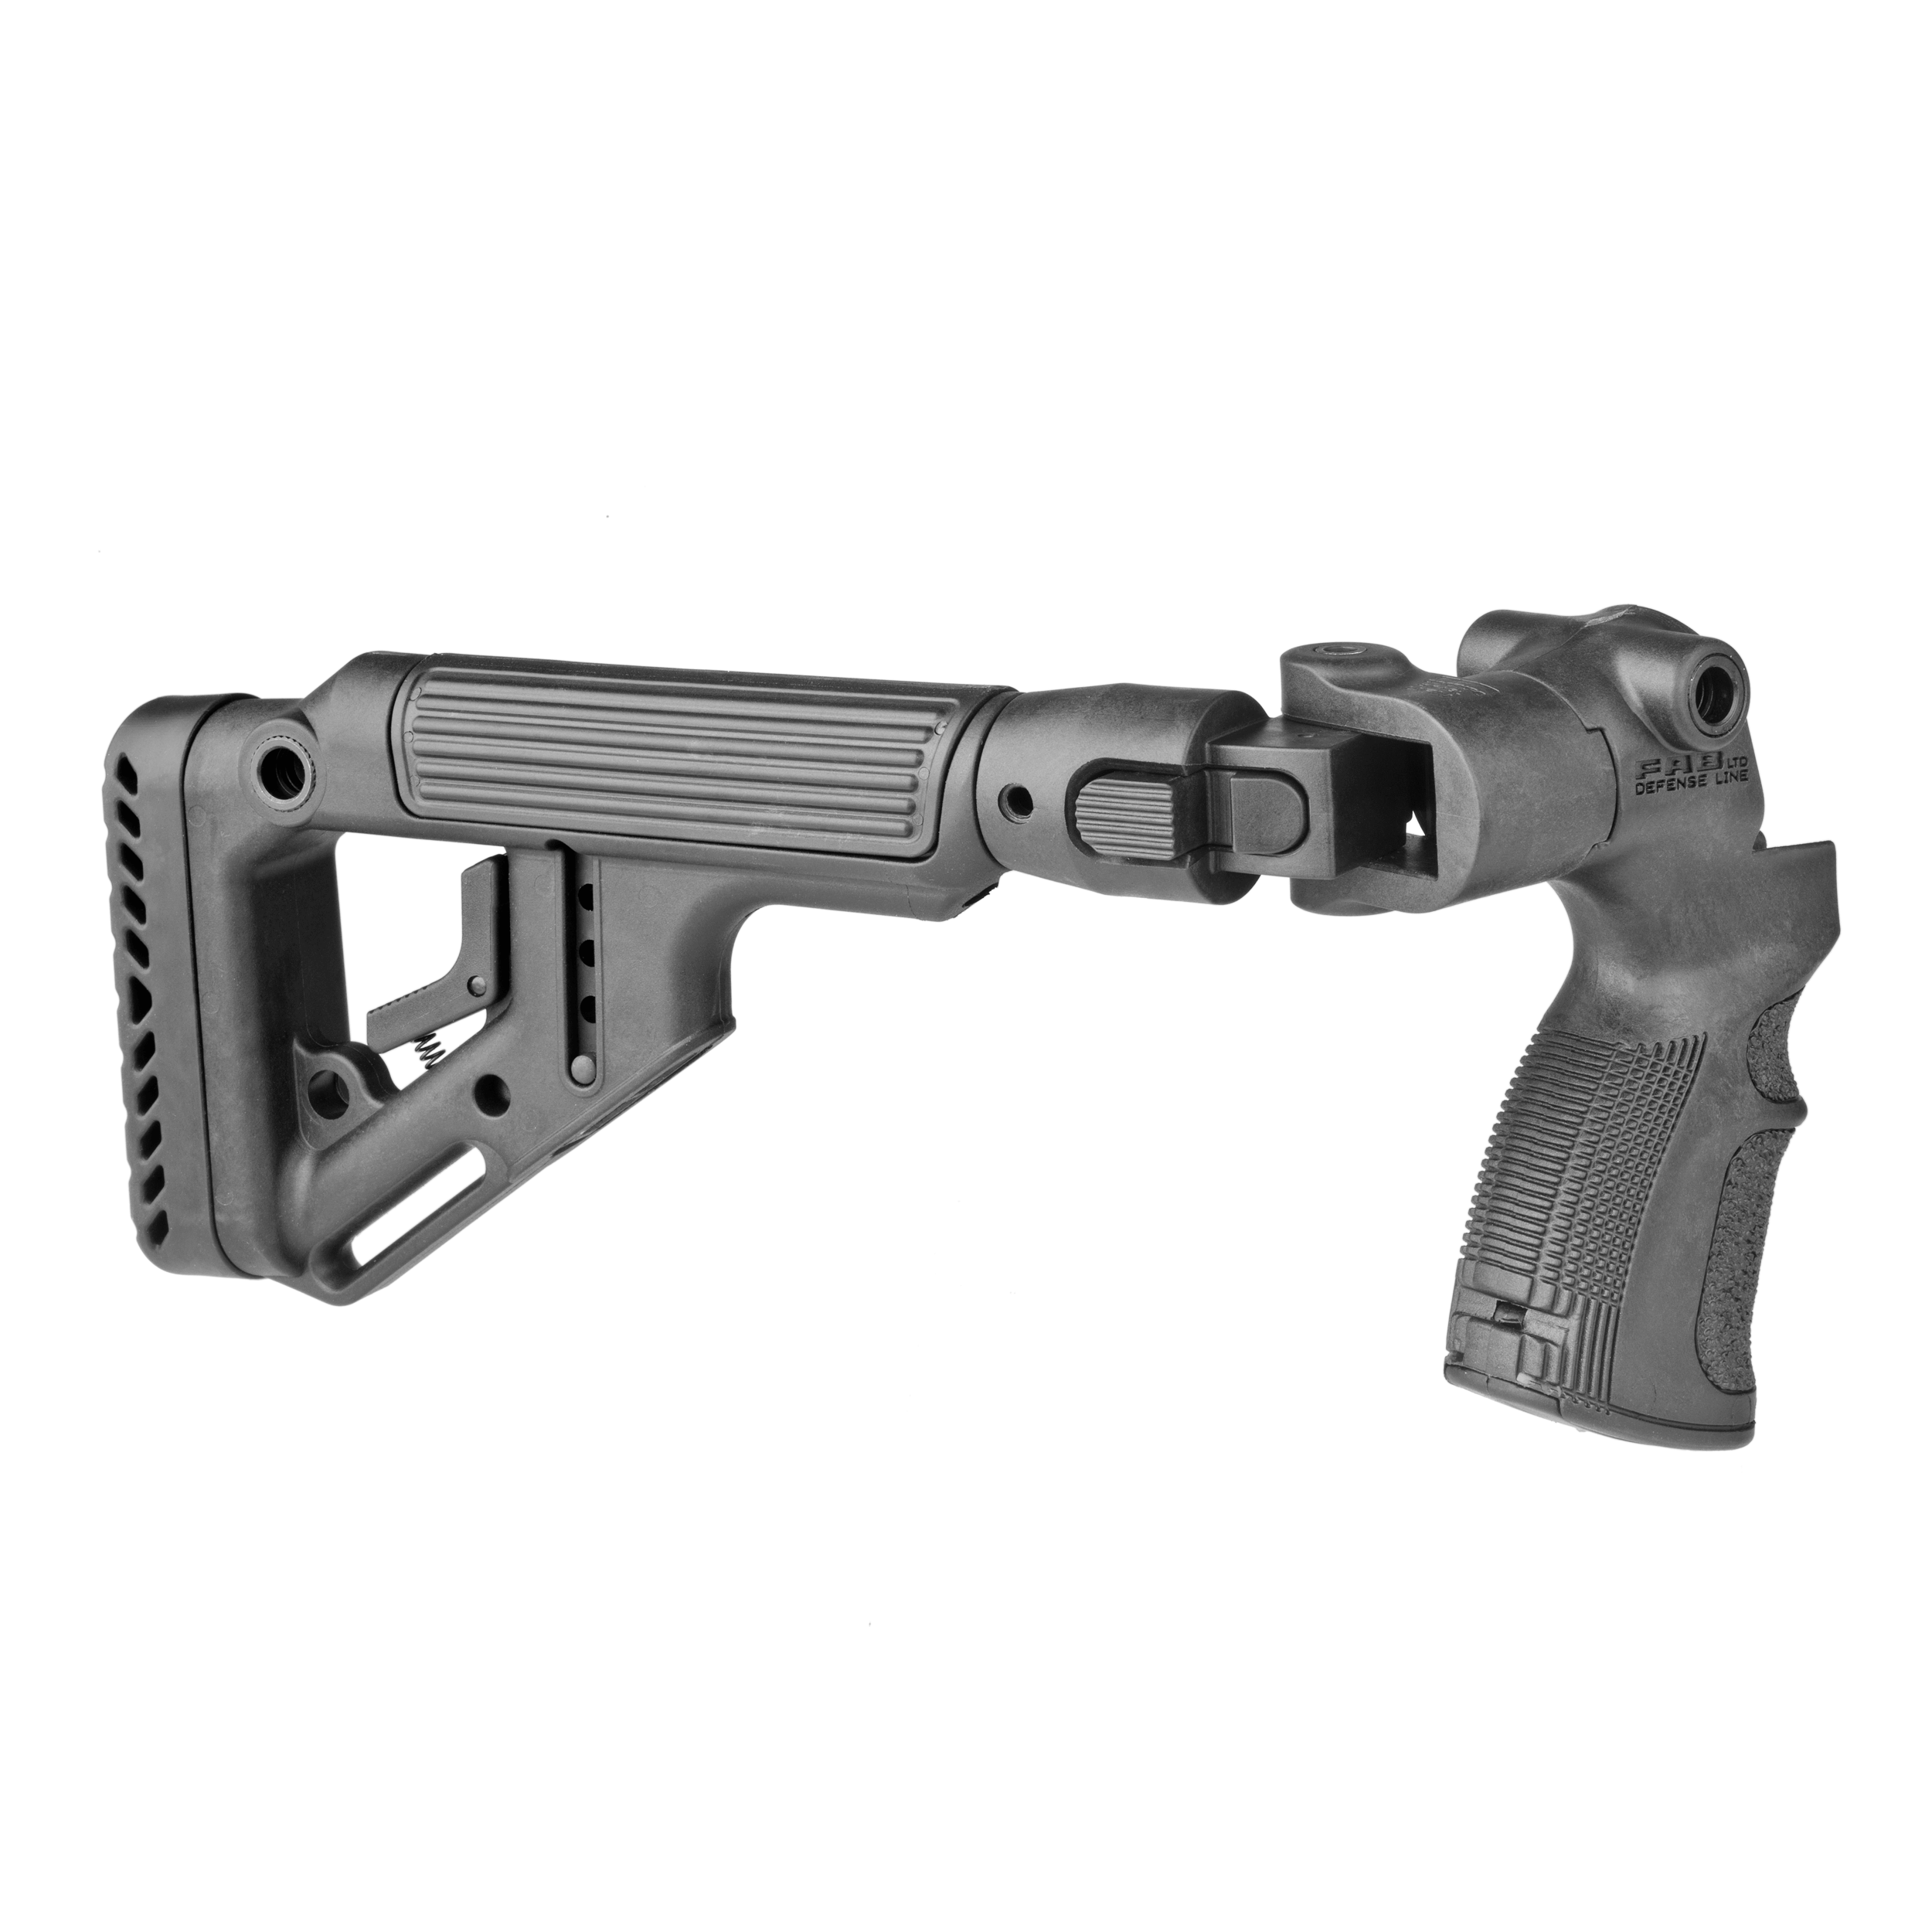 Mossberg 500 folding buttstock / cheek rest